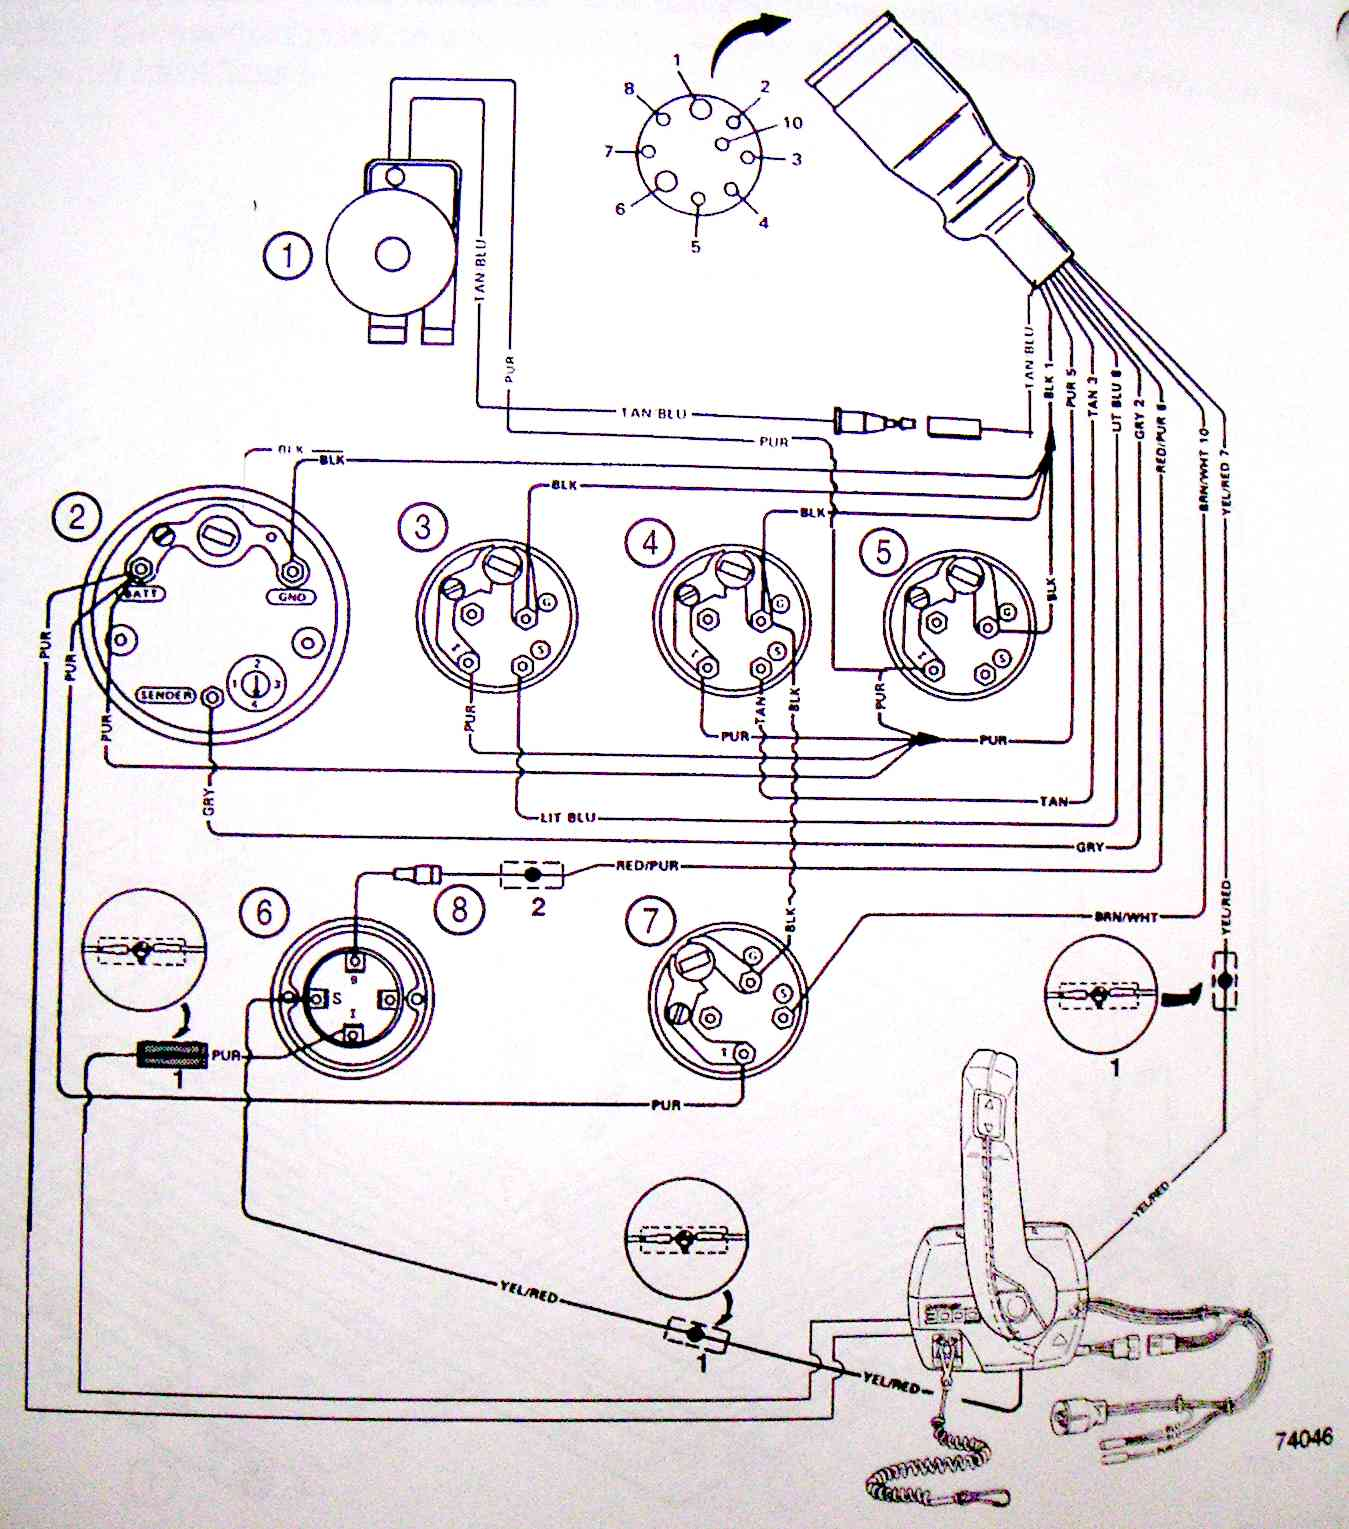 BoatHarness74046 454 mercruiser wiring diagram schematics wiring diagram